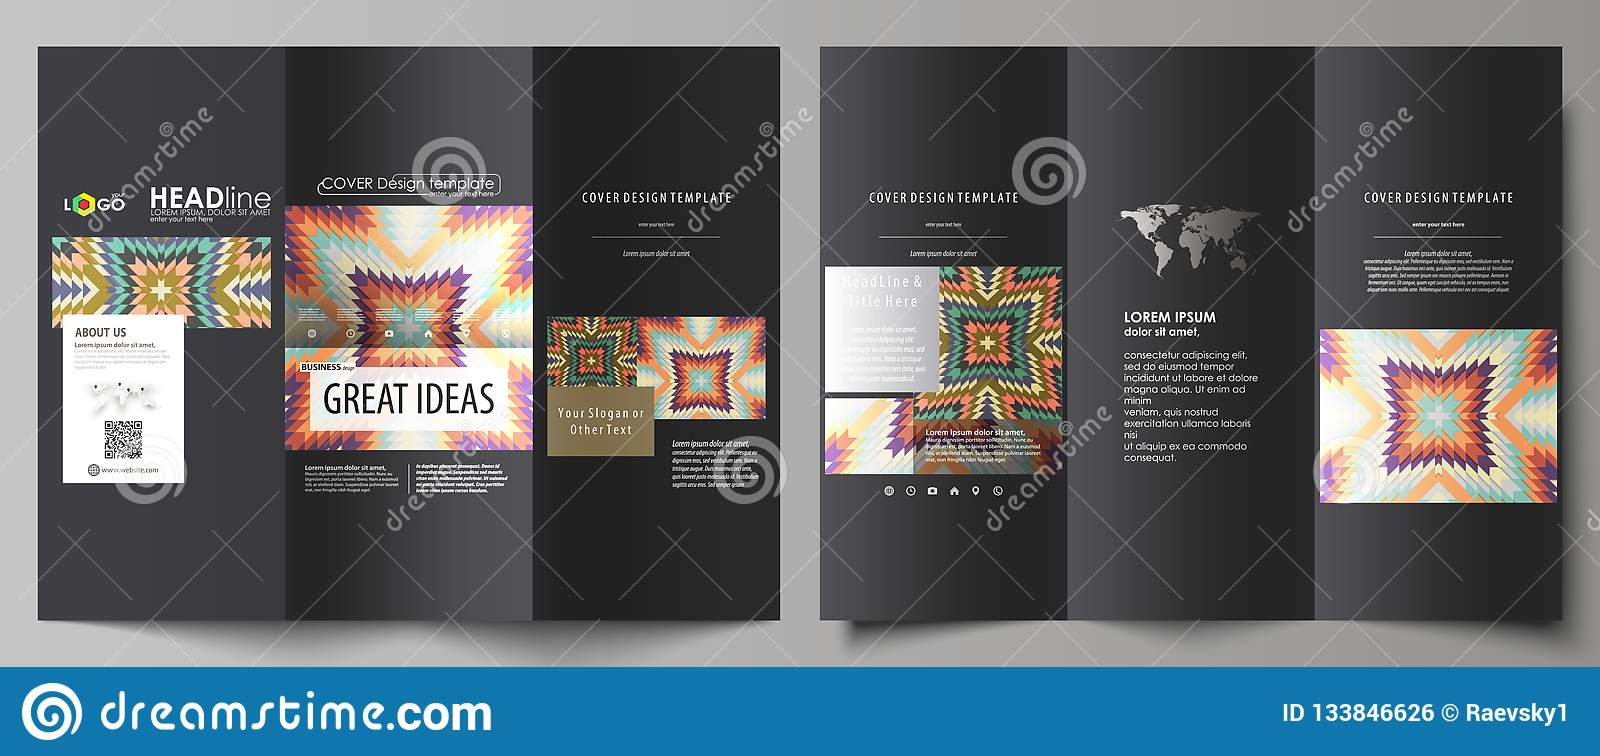 Tri Fold Brochure Business Templates On Both Sides Abstract